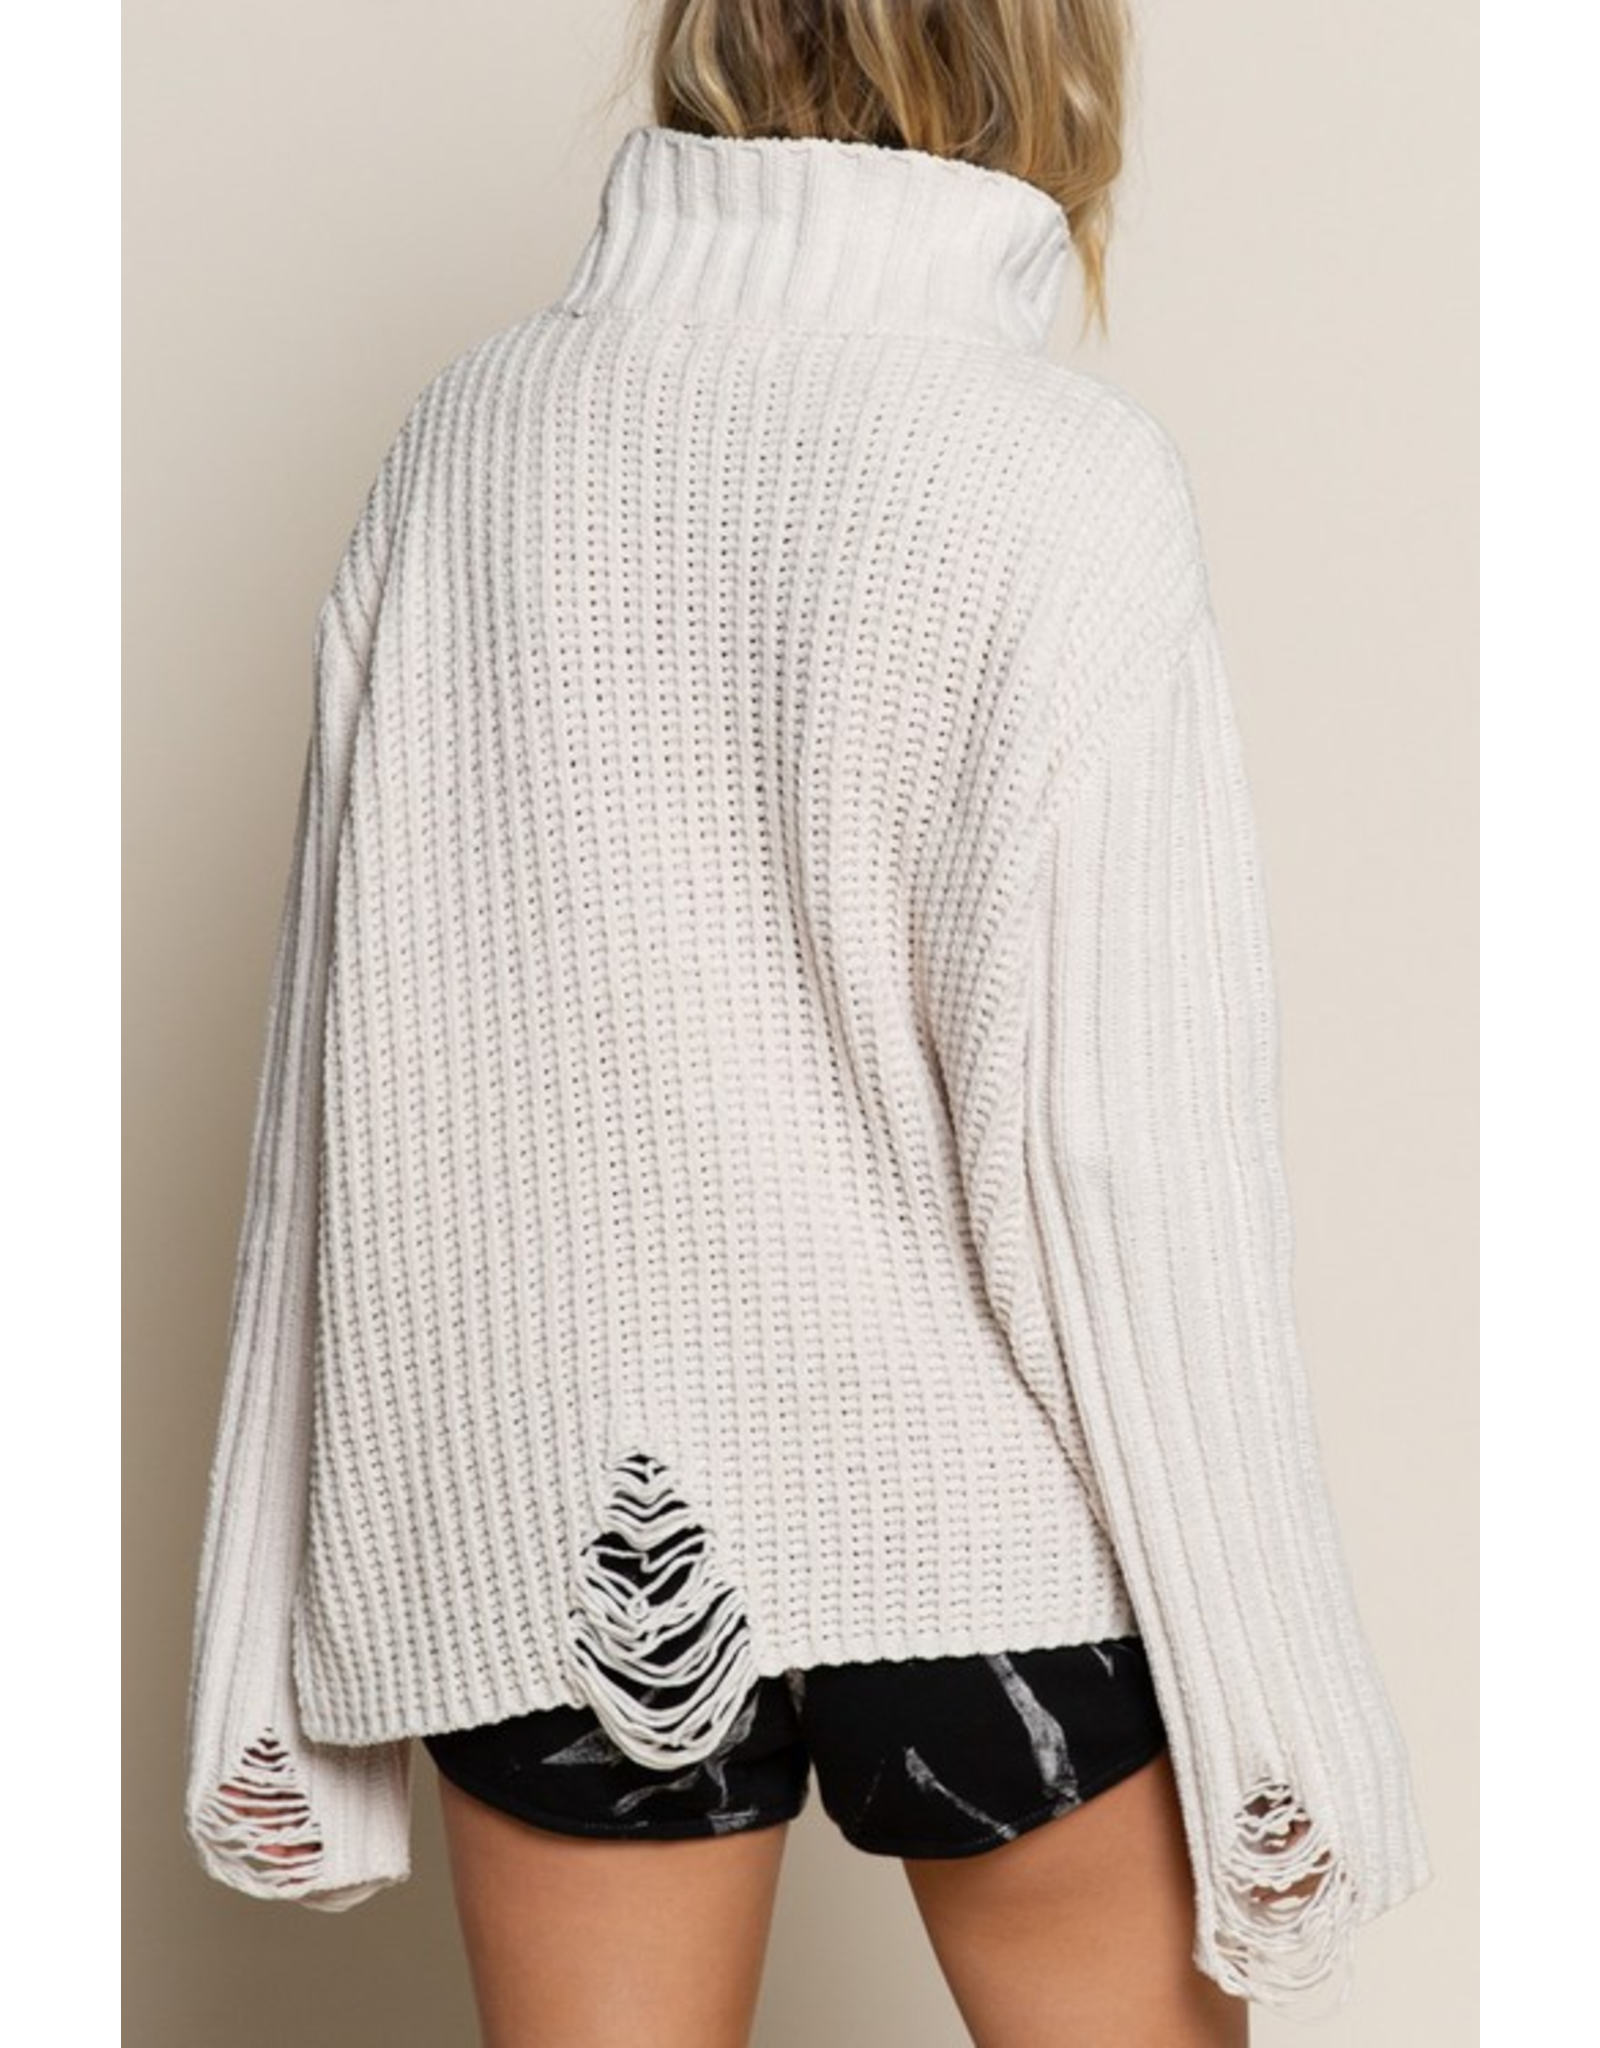 Distressed Turtle Neck Sweater